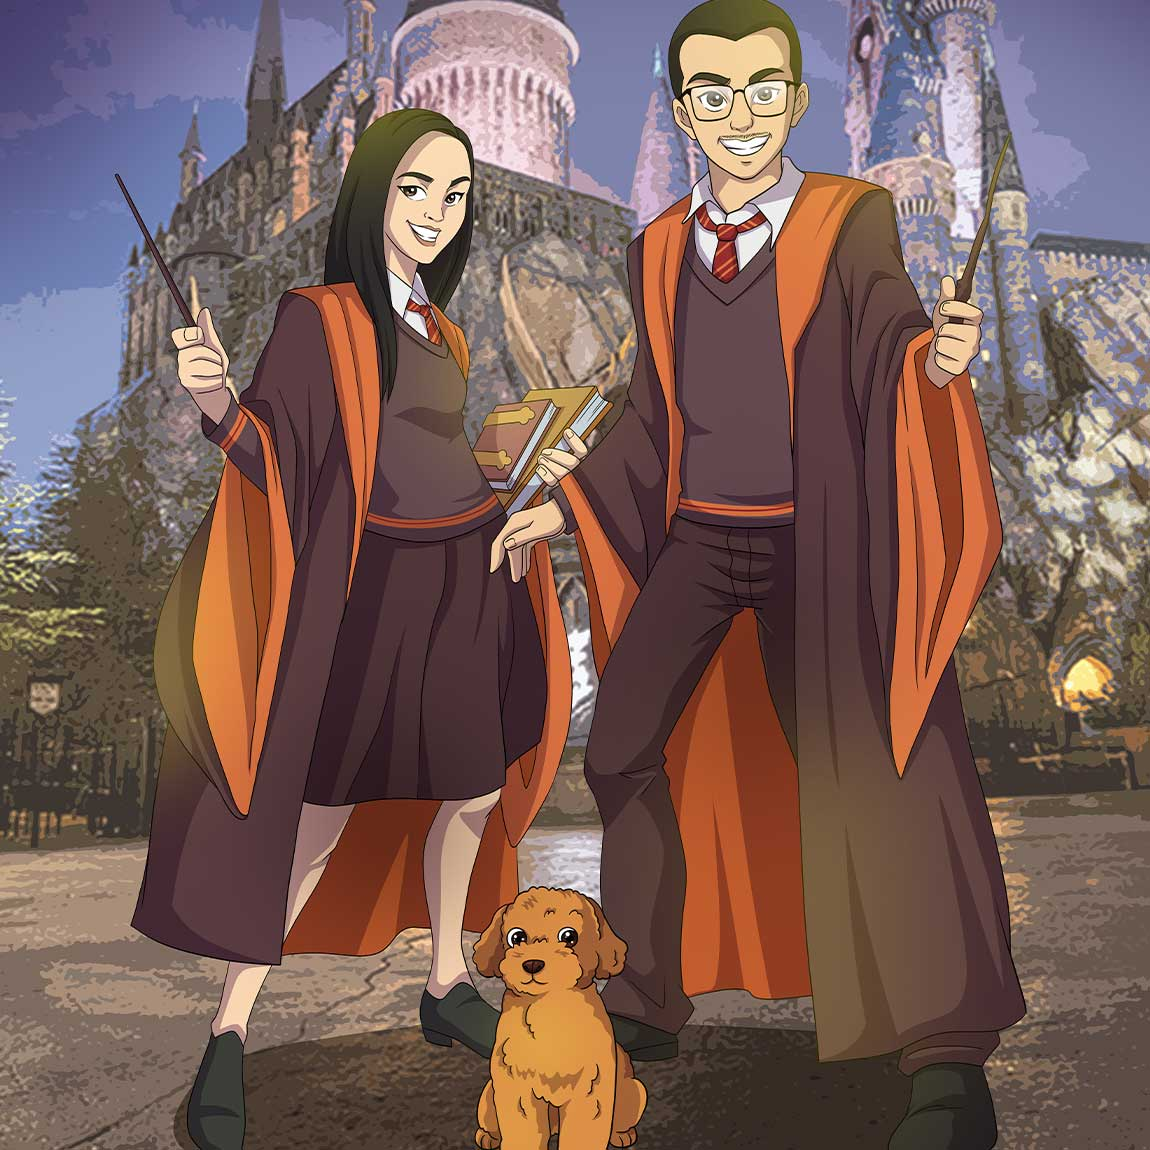 Young man, woman and their puppy turned into anime characters. They are dressed as Harry Potter characters. Both holding magical sticks, looking excited, smiling widely. The girl is also holding books in her other hand. The puppy is brown and he is standing still, looking viewer in the eyes with excitement.